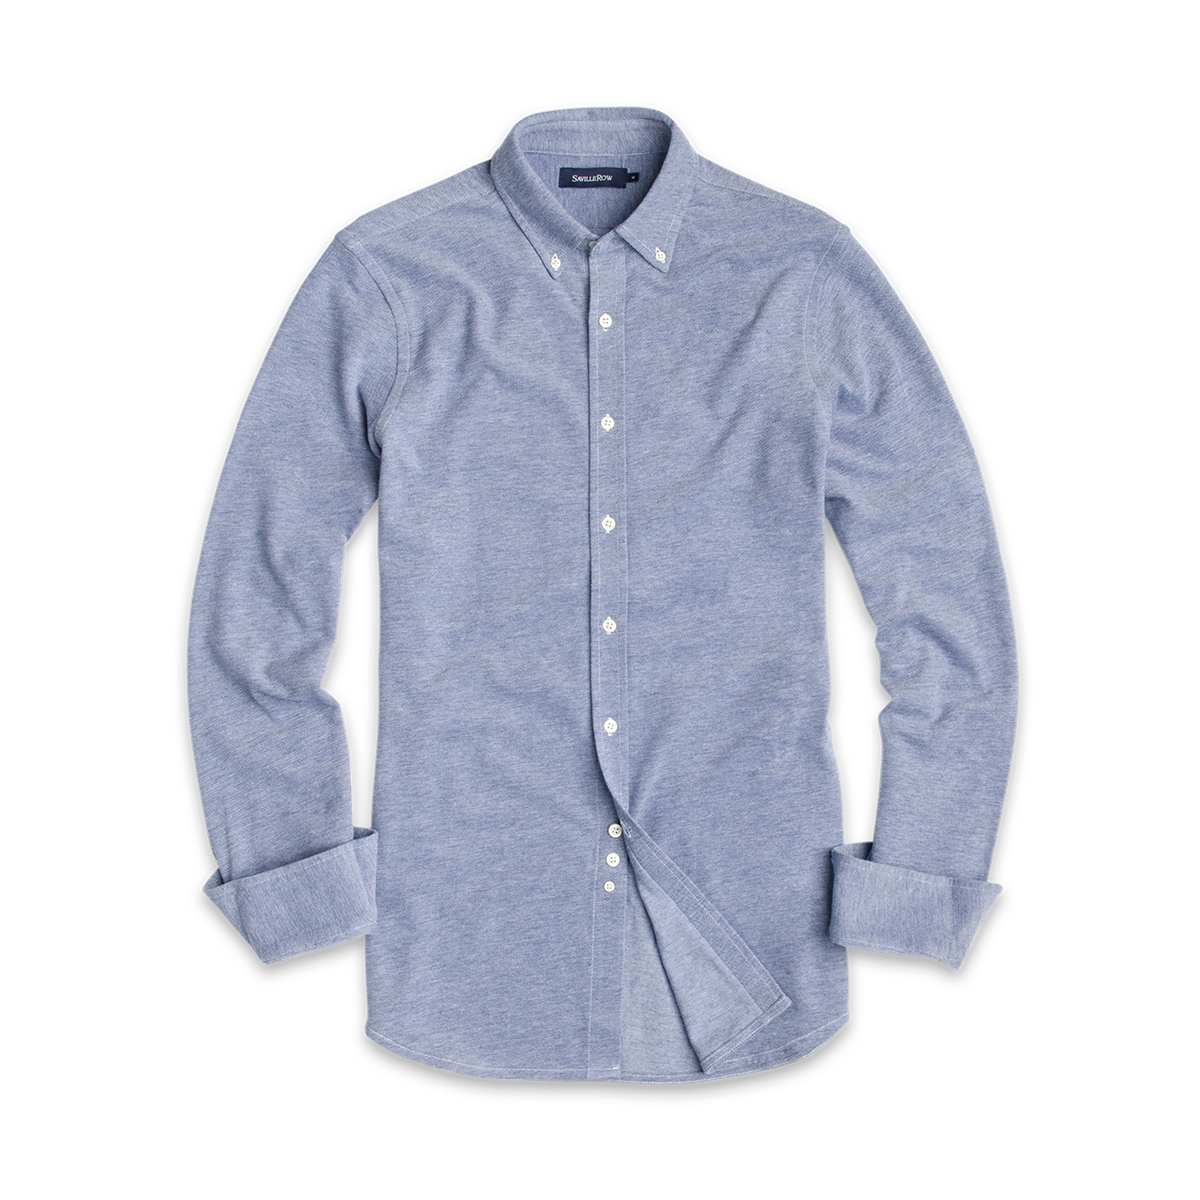 Camisa Lisa Button Down Manga Larga Oxford de Punto